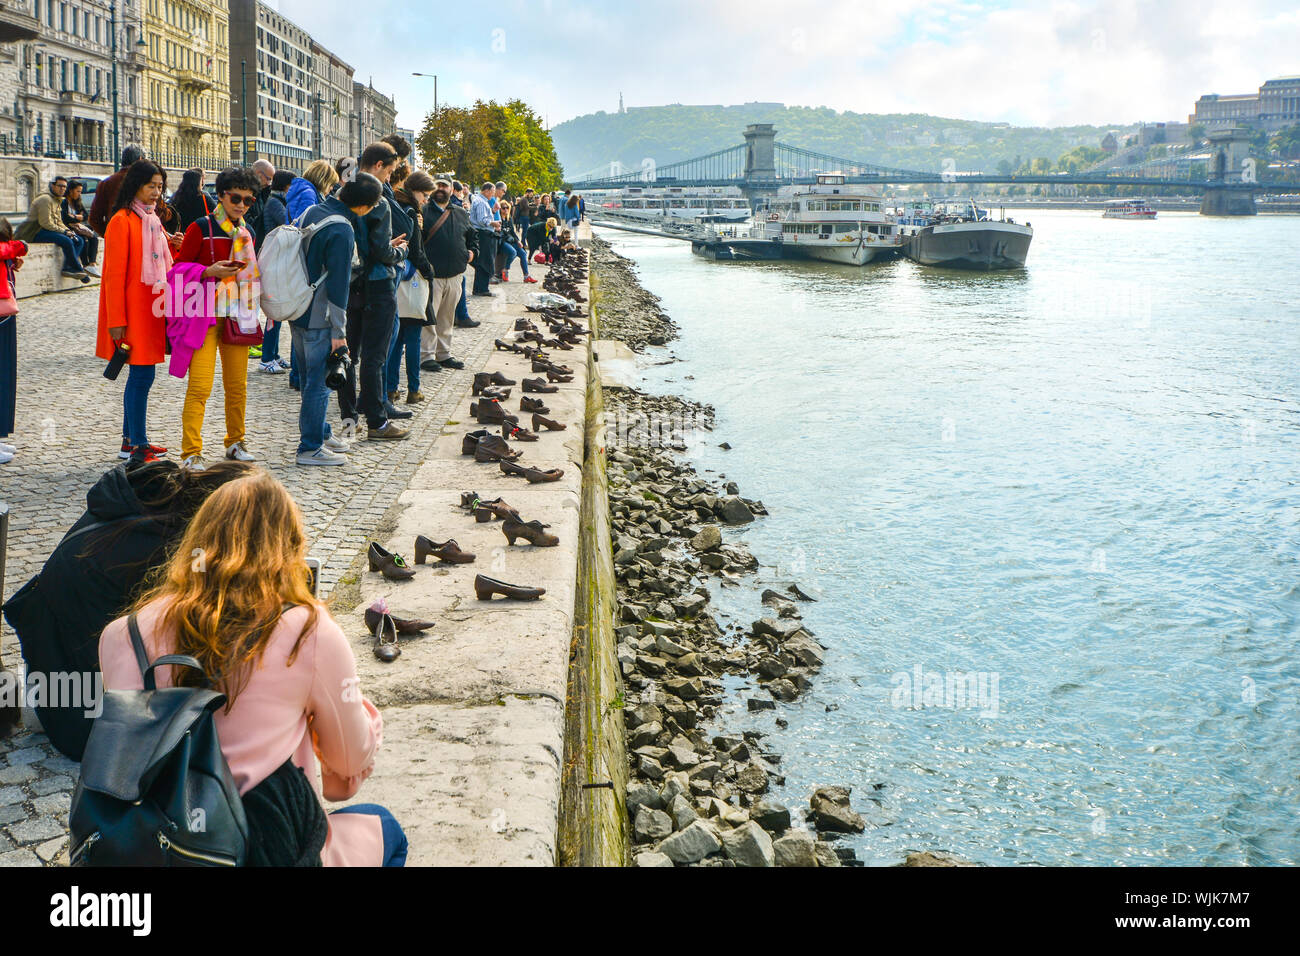 Tourists visit and take photos at The Shoes on the Danube Bank, a memorial in Budapest, Hungary with the Chain Bridge and boats in view Stock Photo